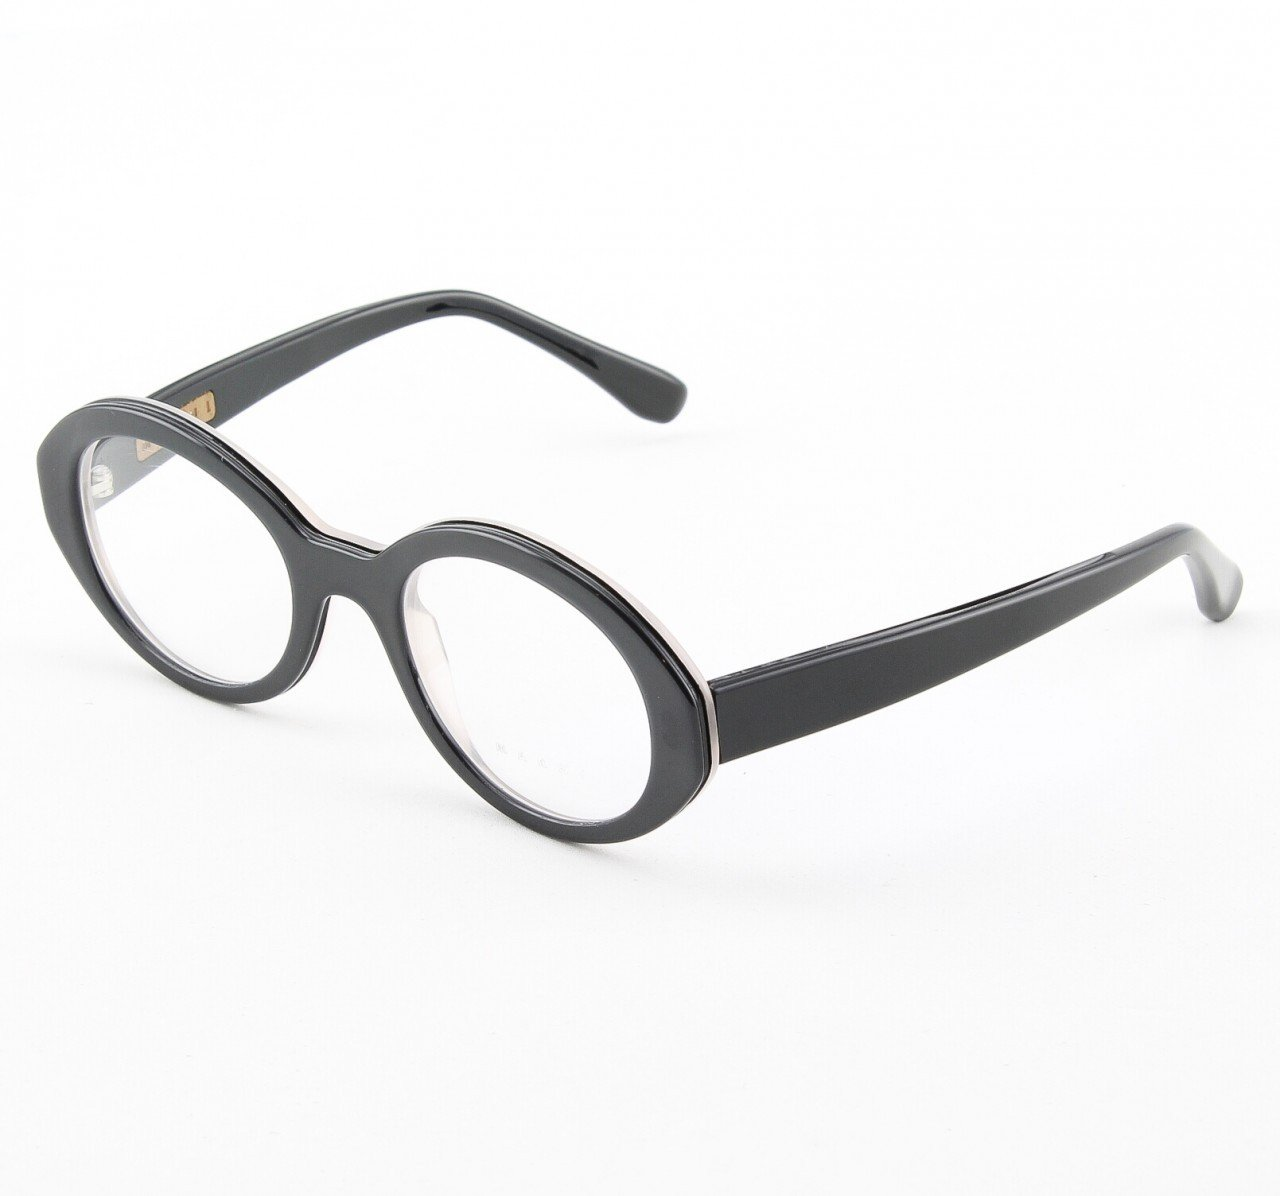 Marni MA651S Eyeglasses Col. 17 High Gloss Black Frame with Clear Lenses